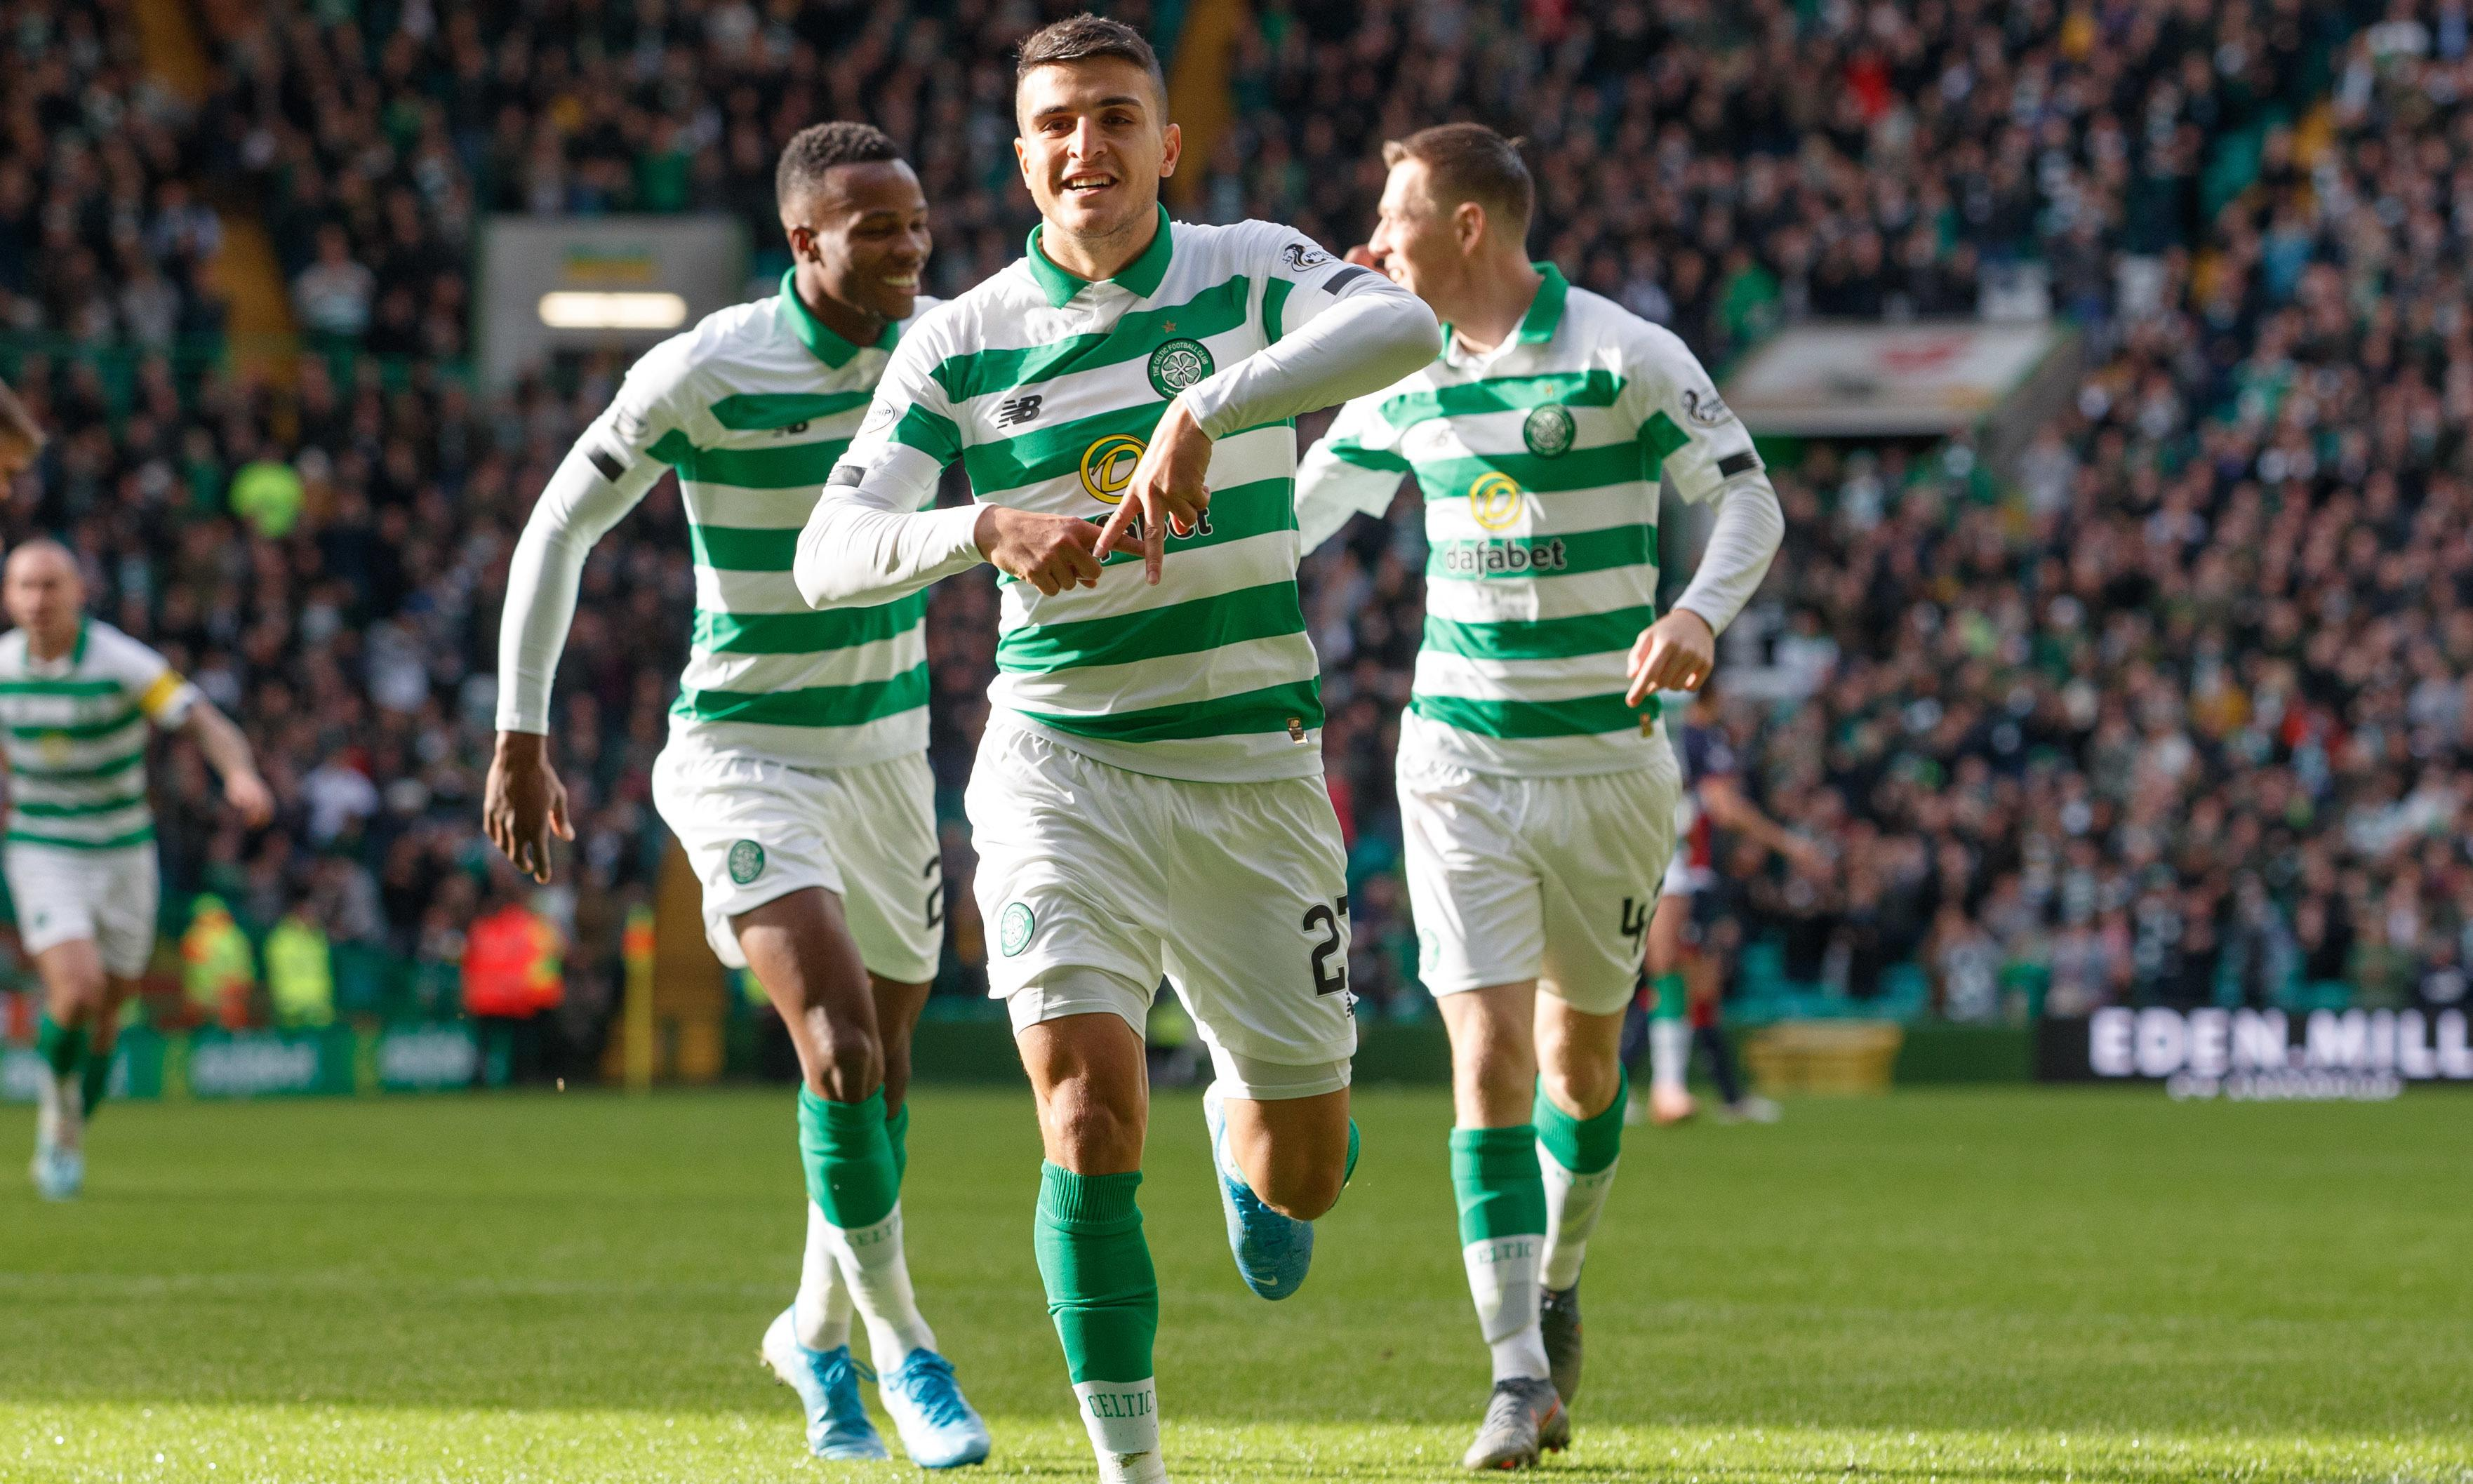 Elyounoussi scores two against Ross County to put Celtic back on top